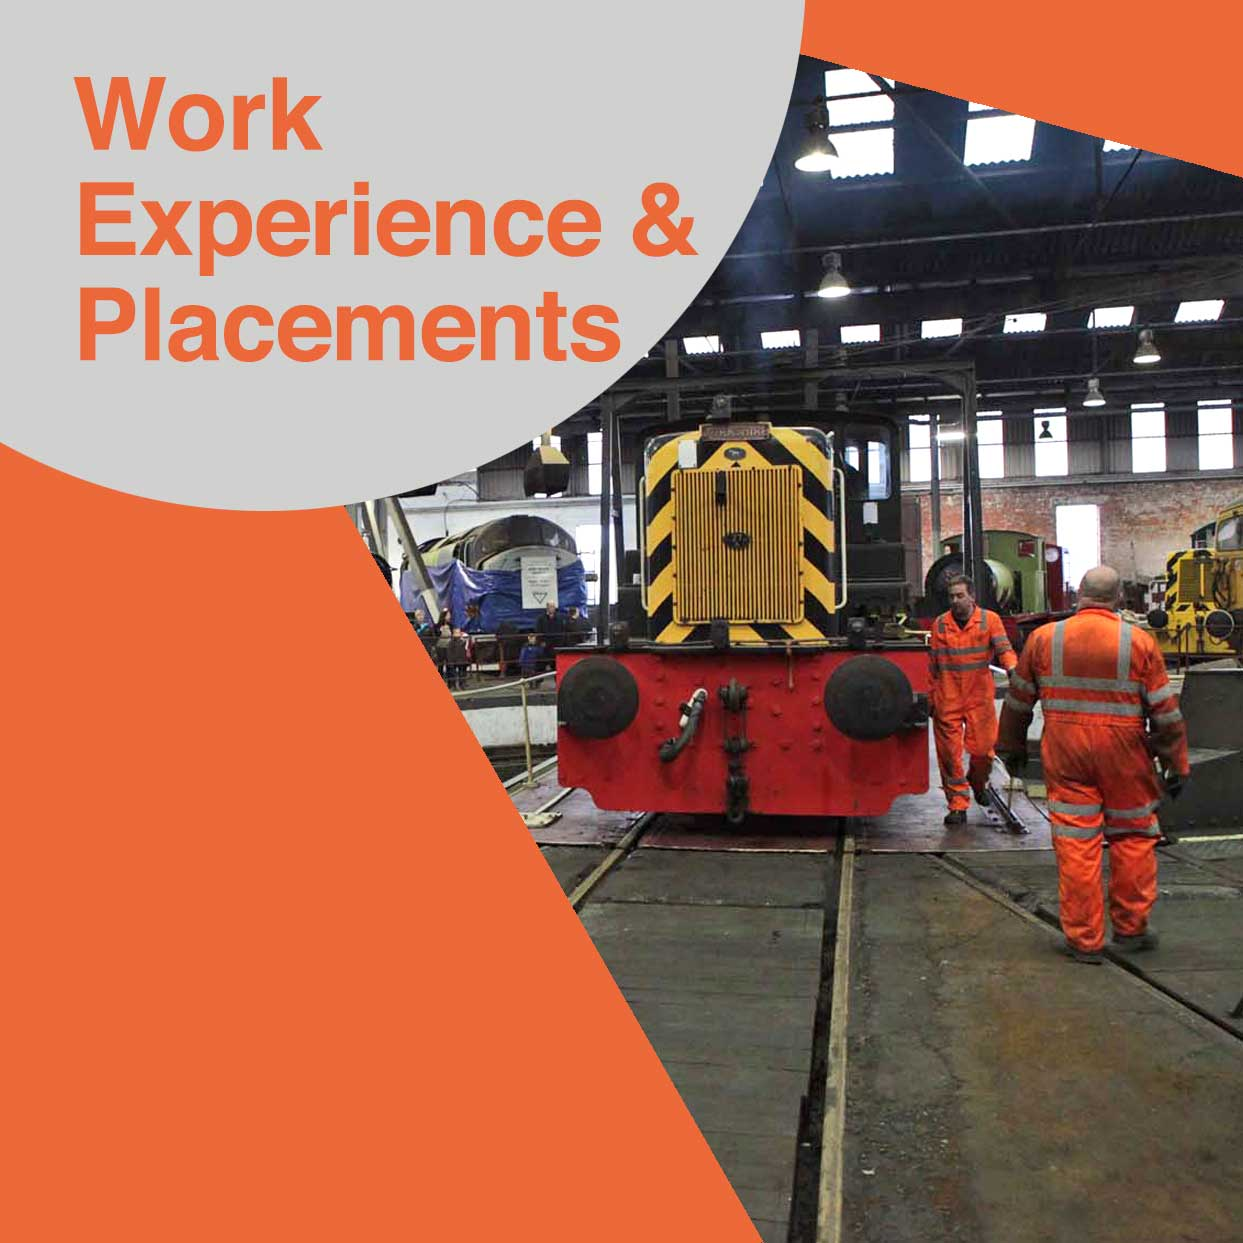 Work Experience and placements available at Barrow Hill Roundhouse and Museum